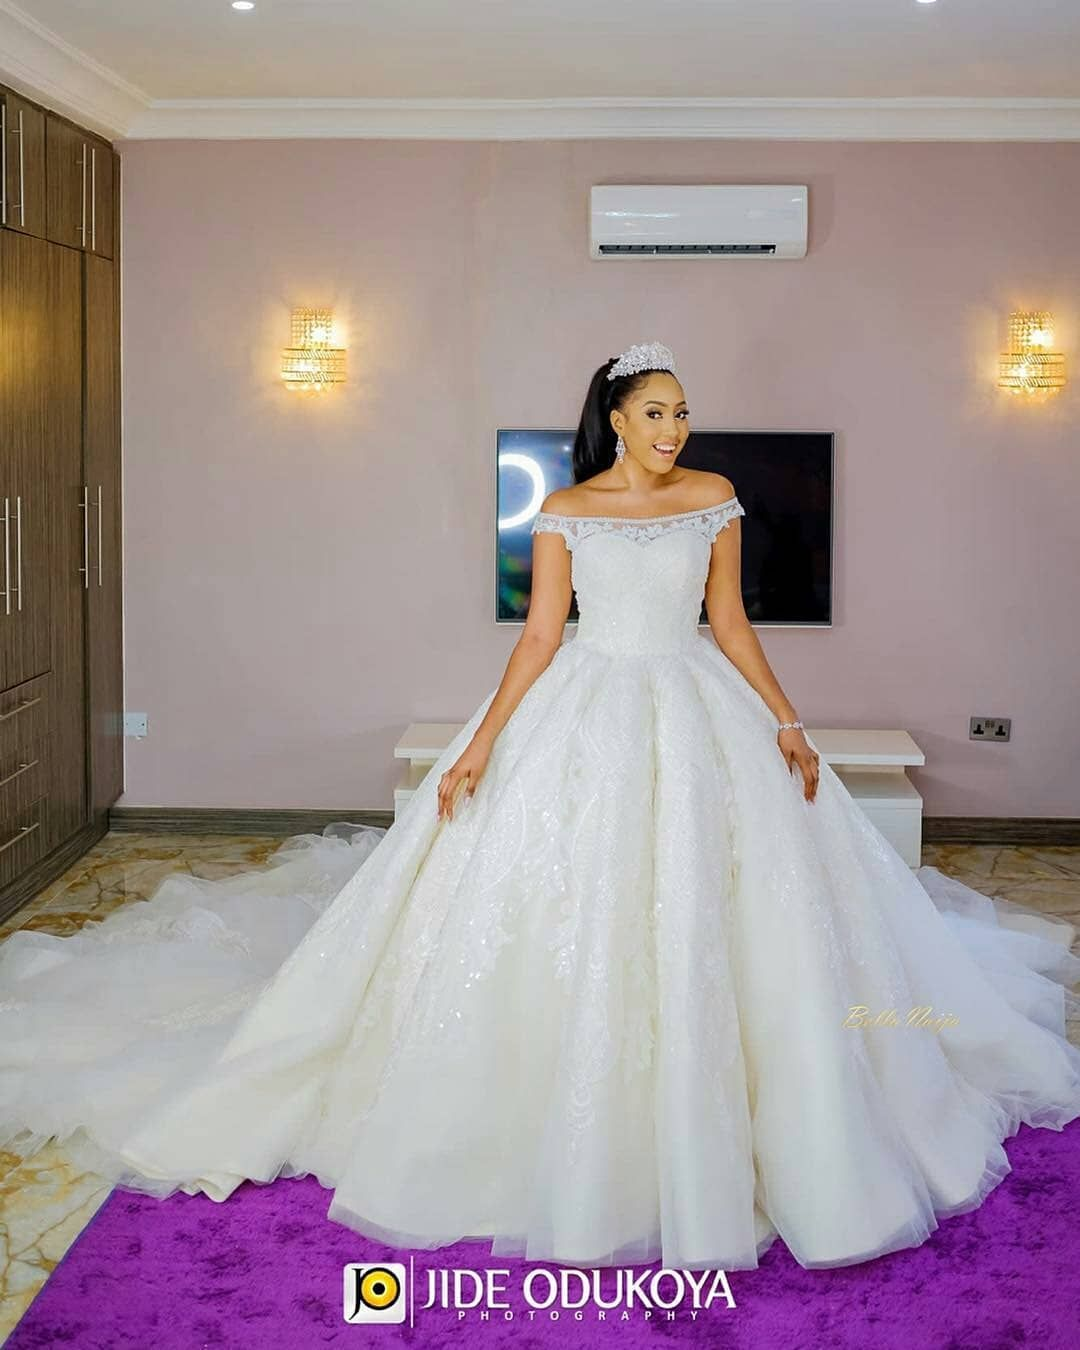 Queen lydia lydia and uyis exquisite abuja wedding is a rich